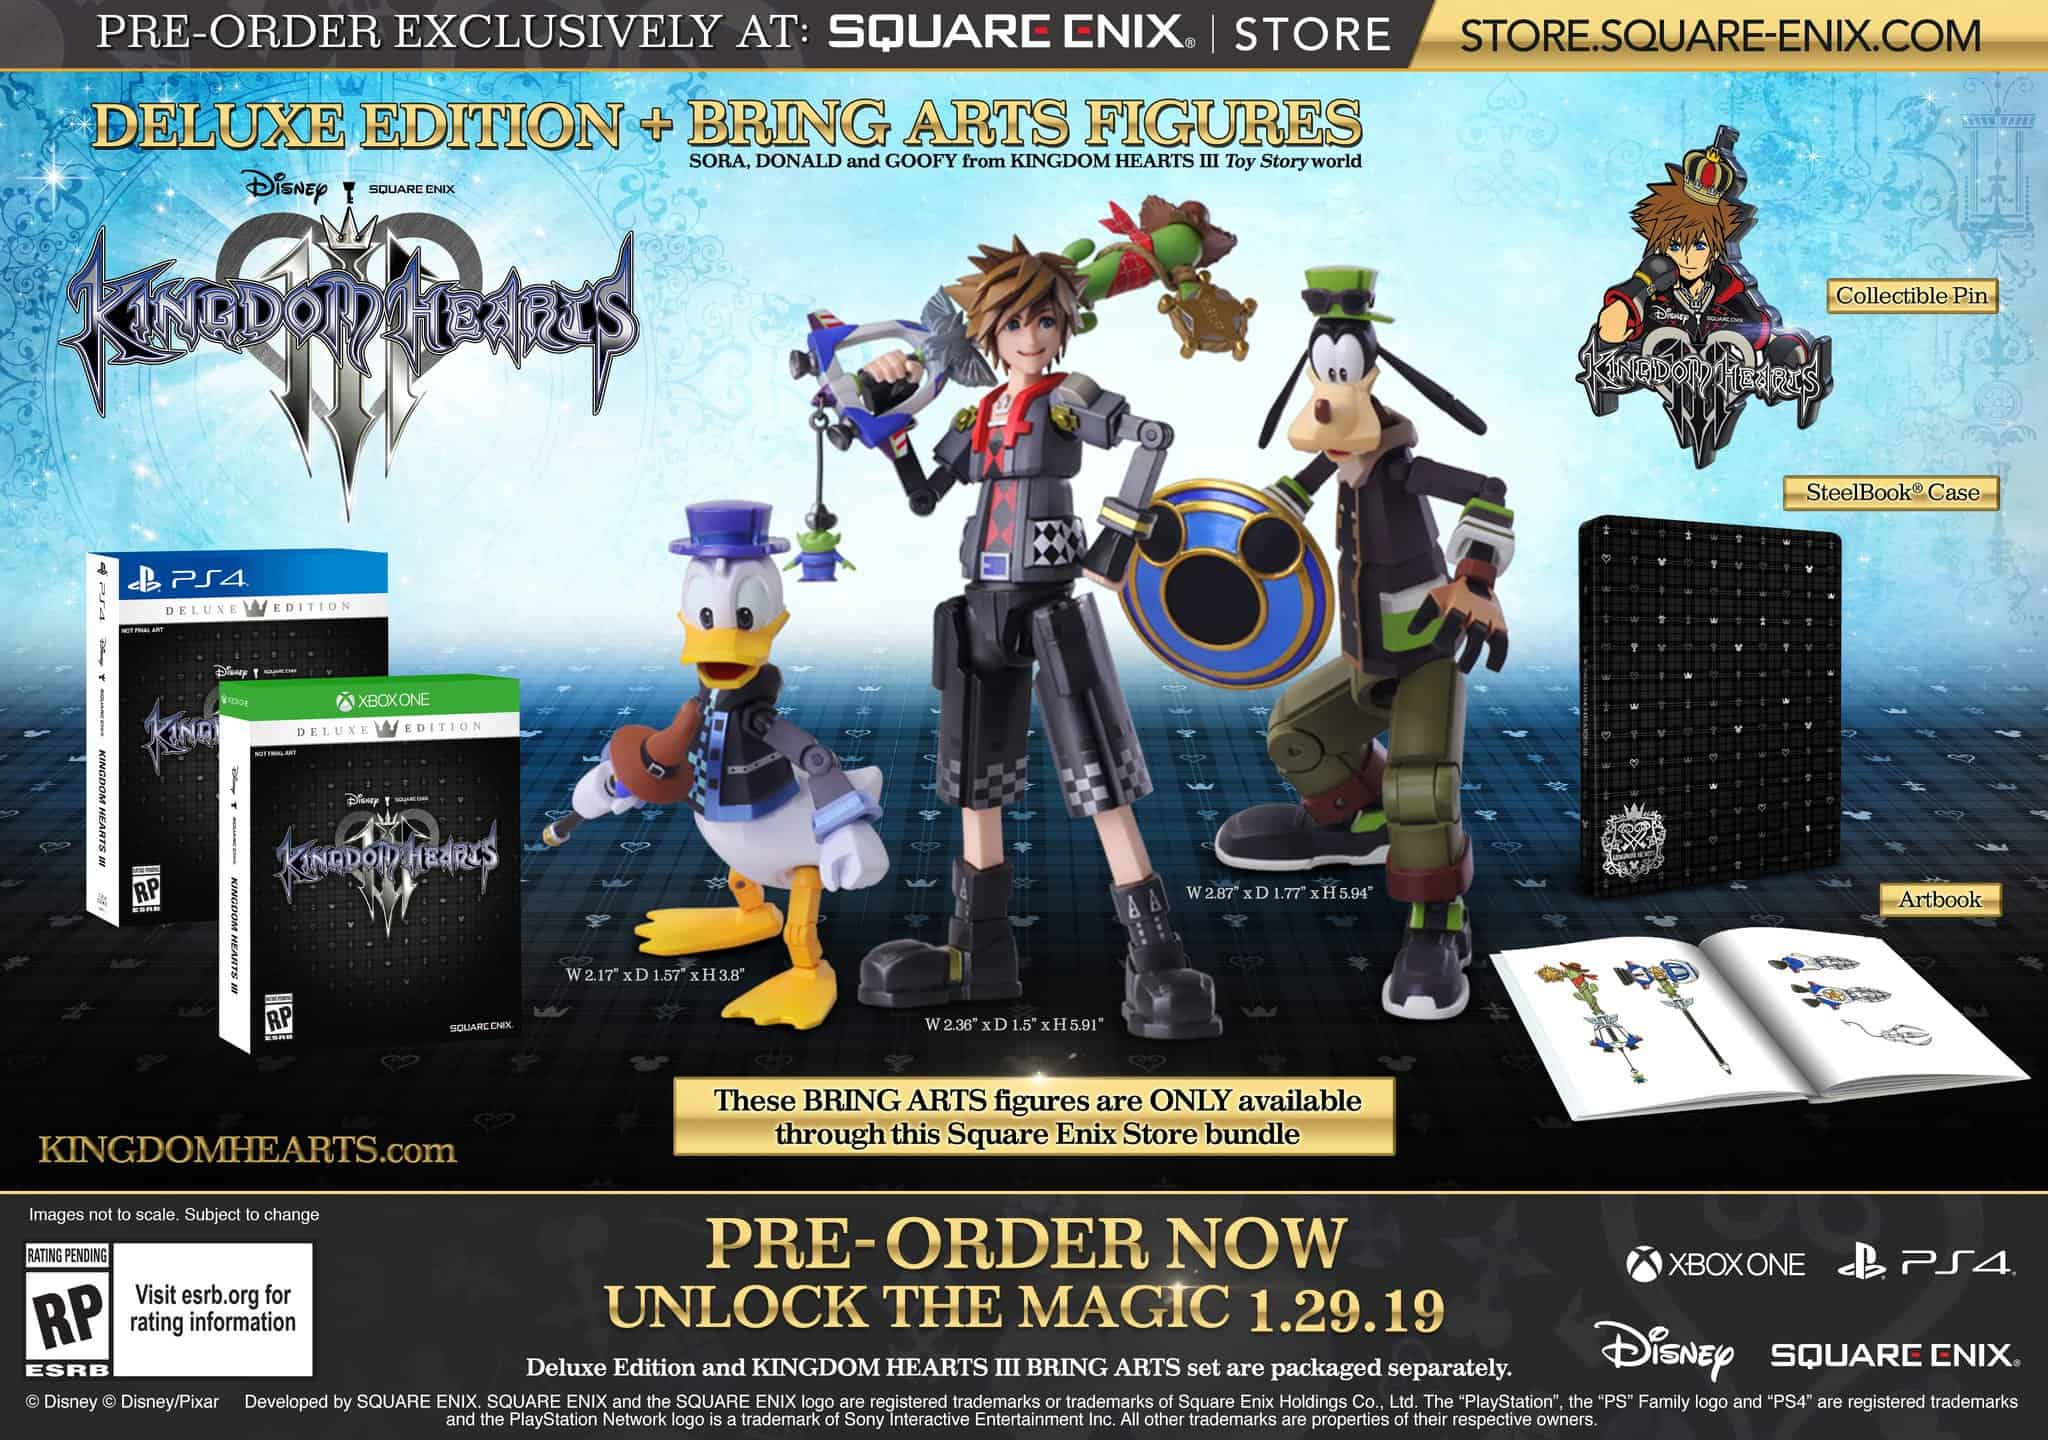 Deluxe edition of Kingdom Hearts 3.